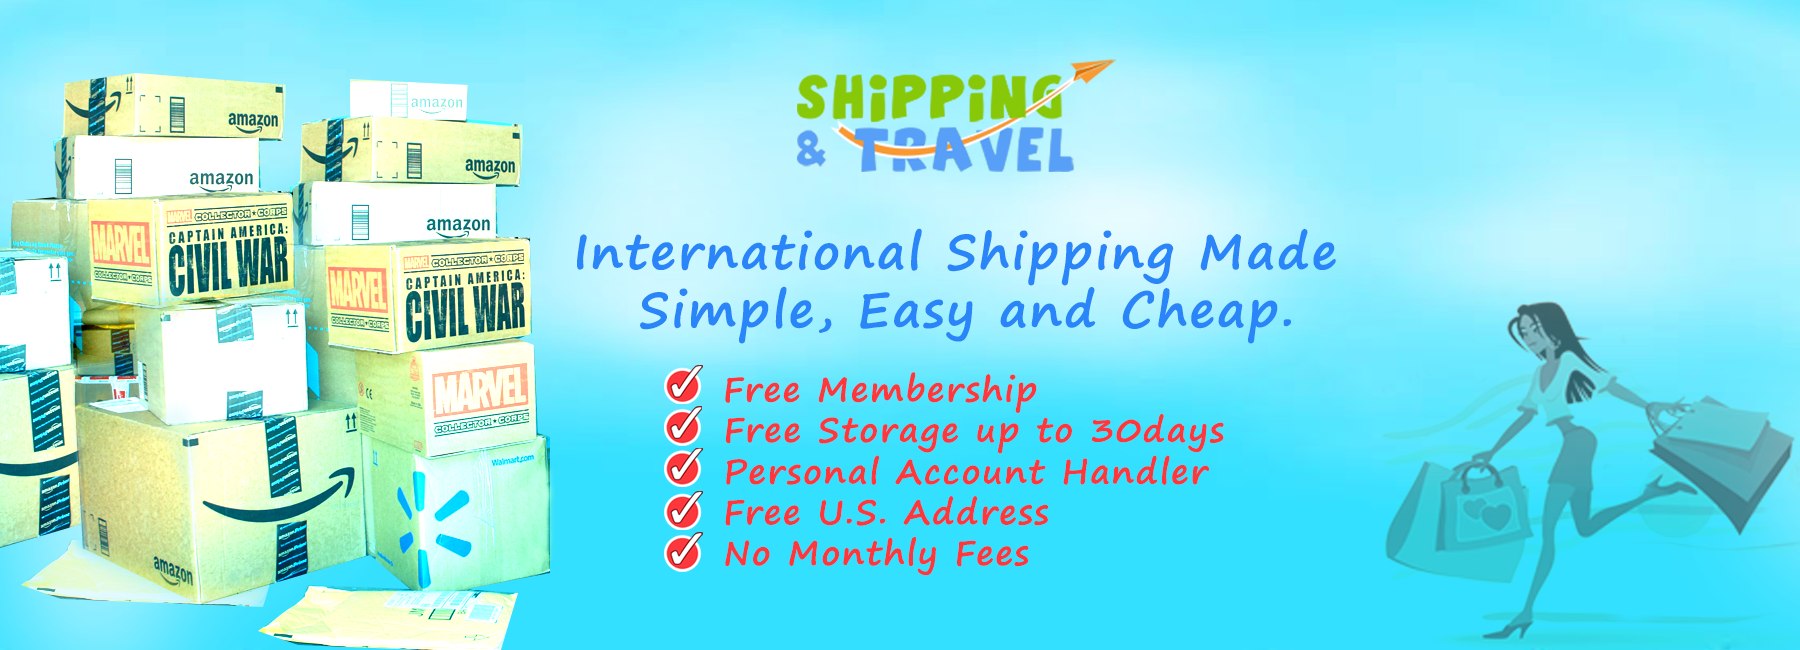 Shipping And Travel